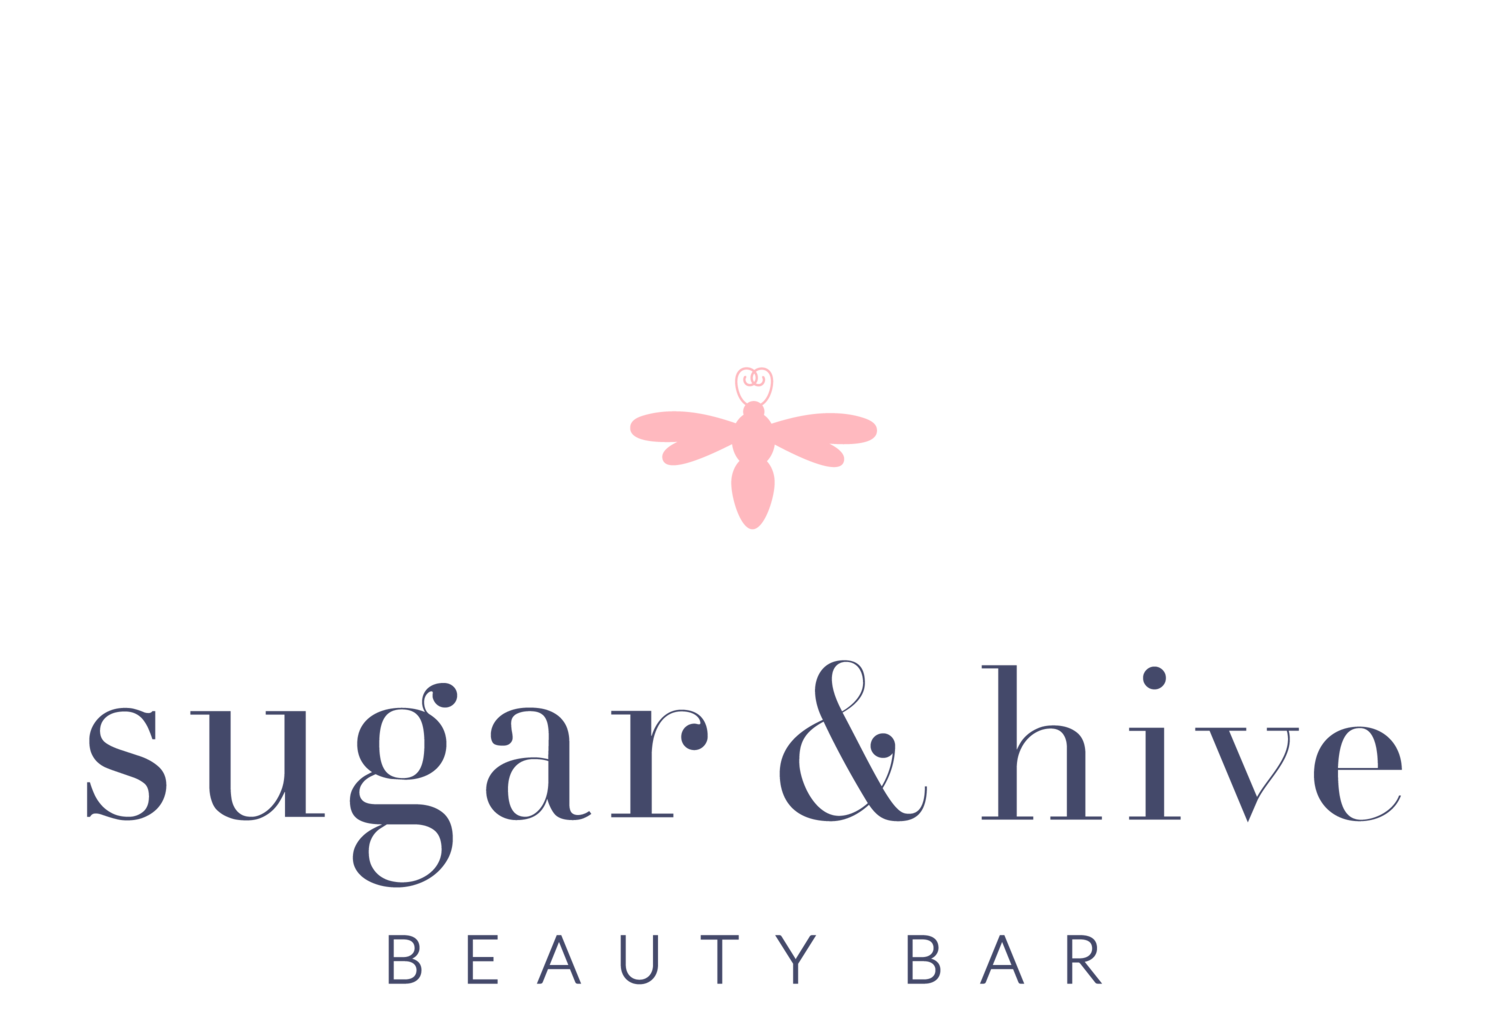 Sugar & Hive Beauty Bar